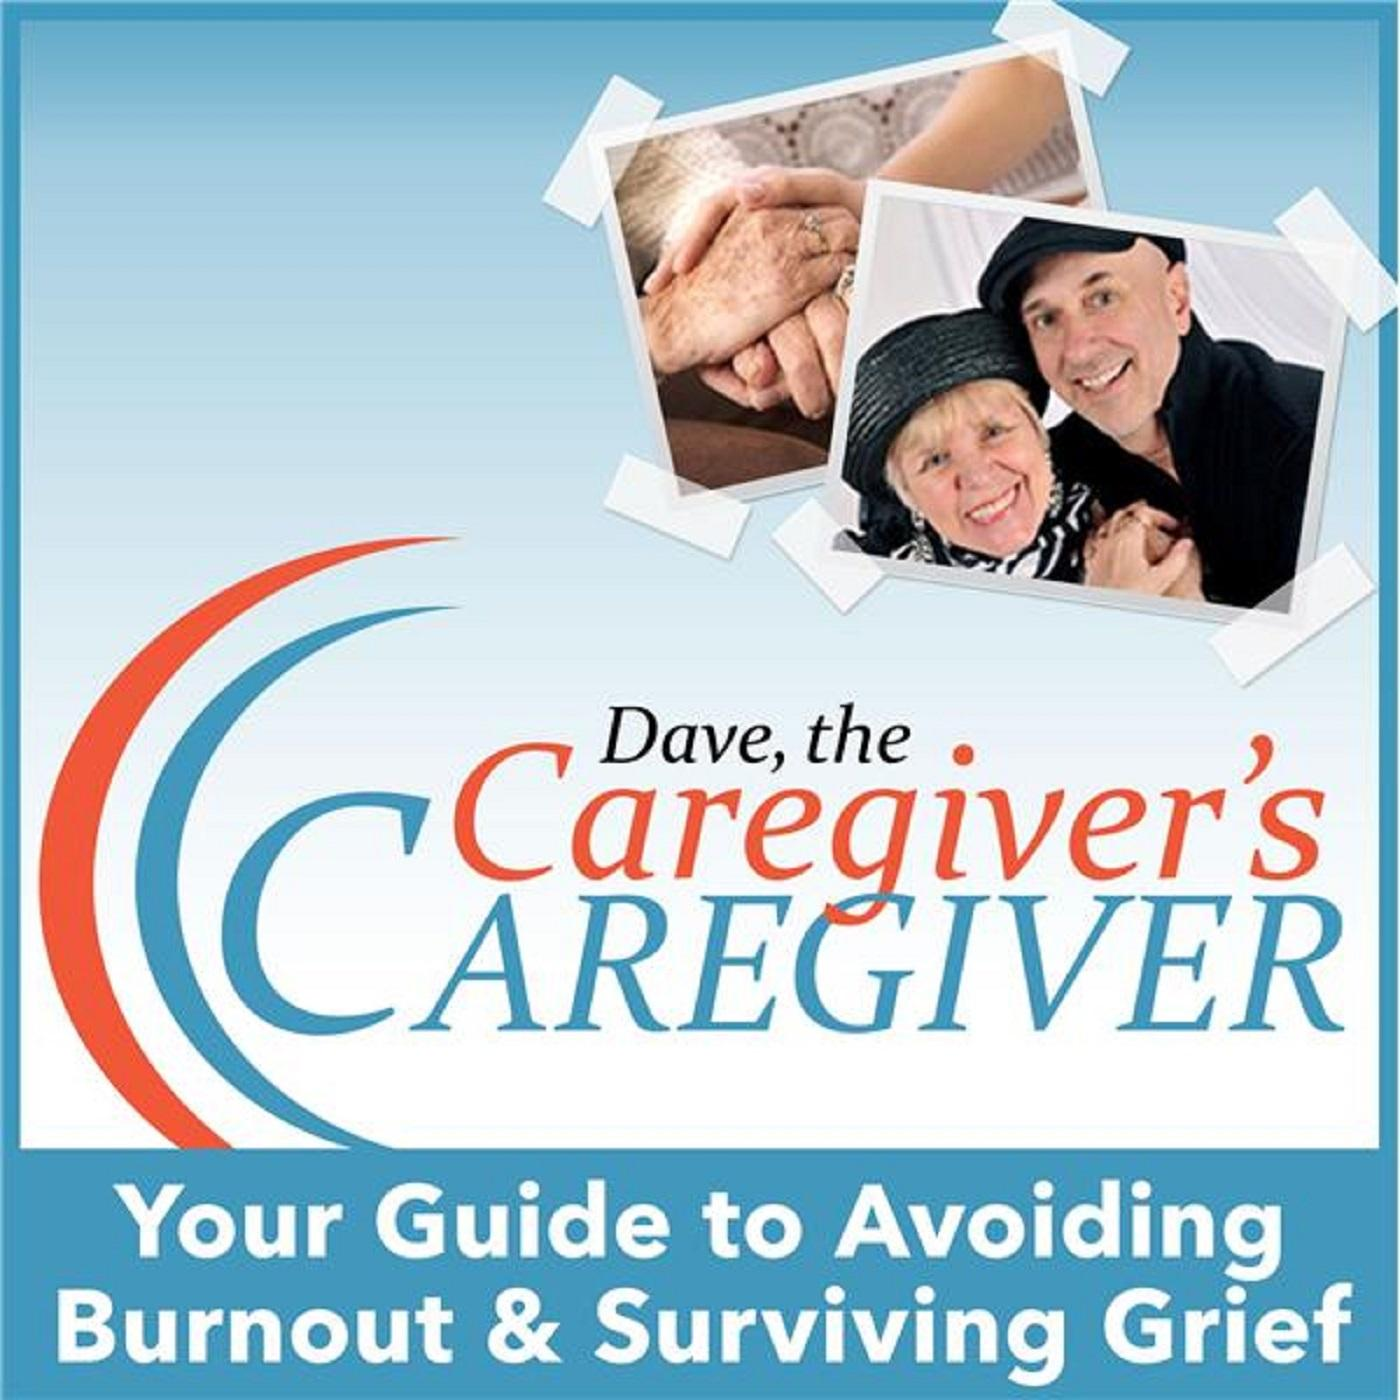 Dave, The Caregiver's Caregiver